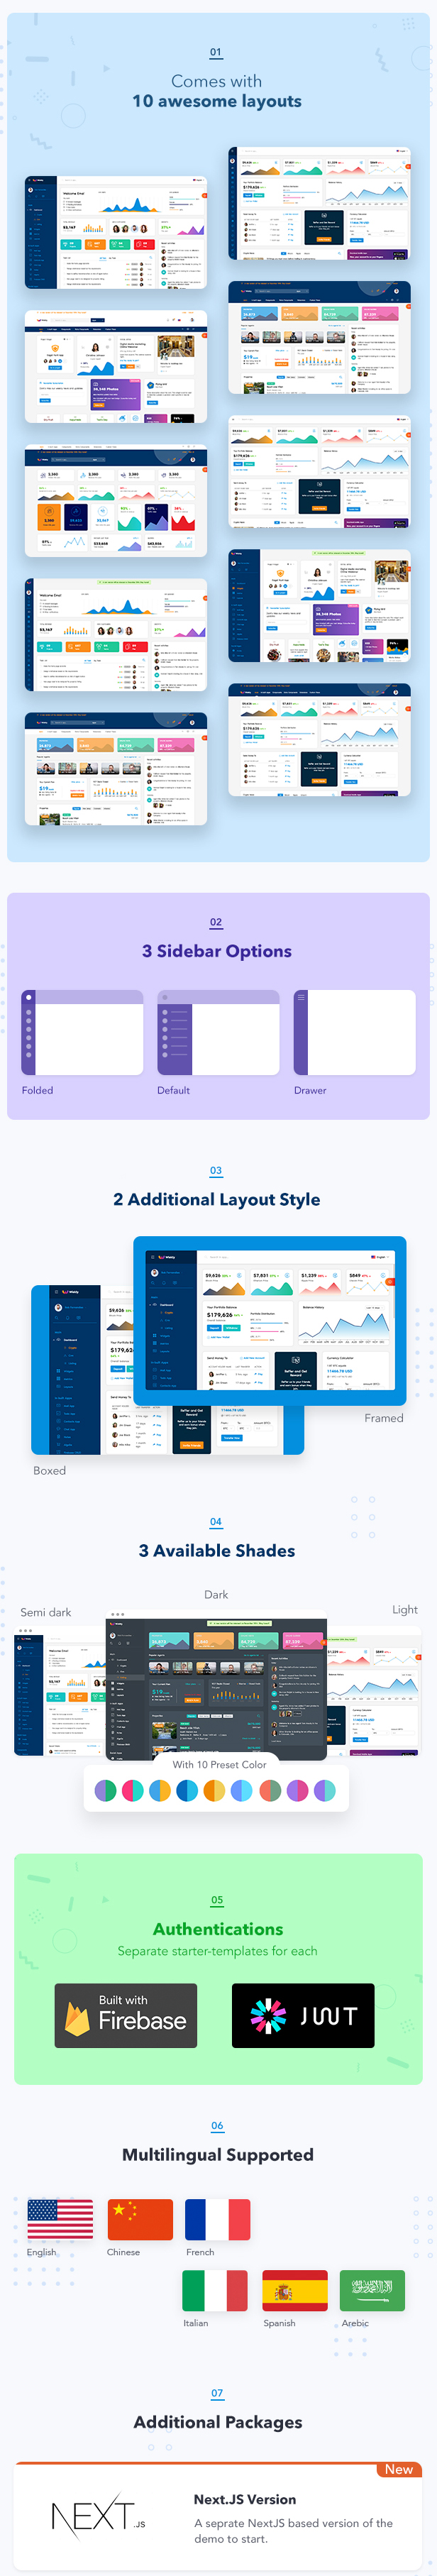 Wieldy - React Admin Template Ant Design and Redux - 2